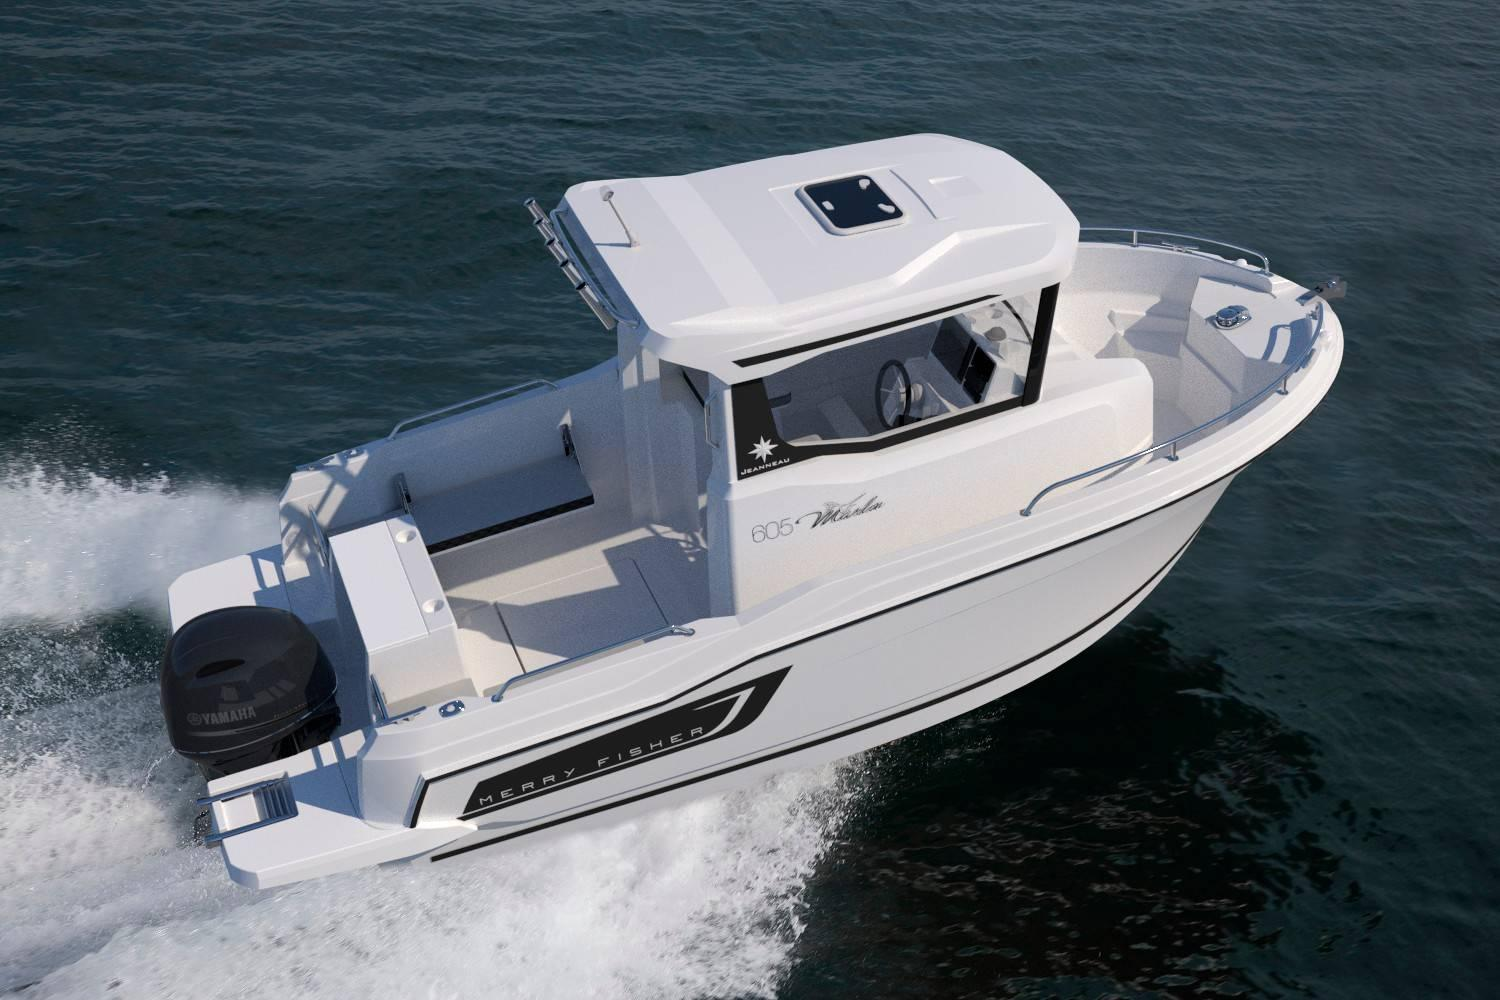 Merry Fisher 605 Marlin Vistas del exterior 3